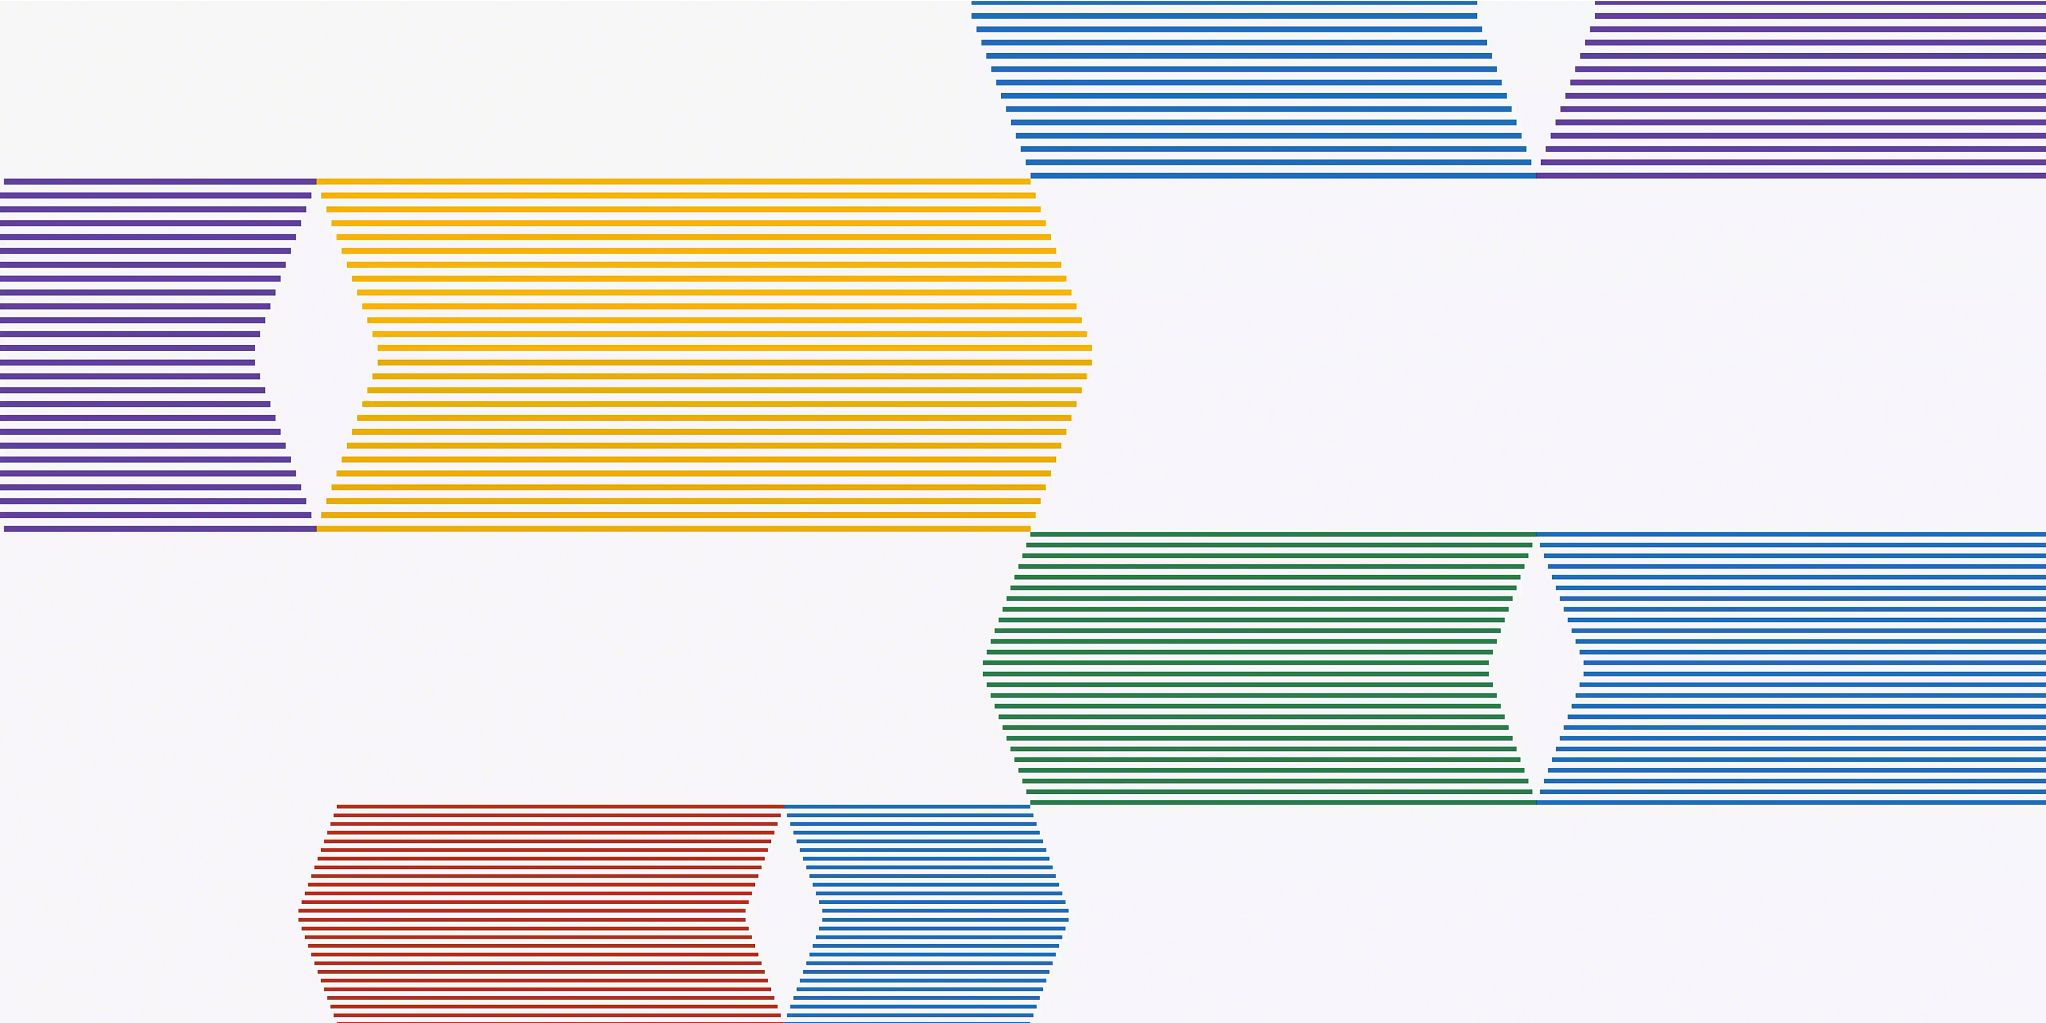 Four wide, colored lines with pointed ends comprised of smaller lines of the same color, converging in the middle of the graphic. The line at the top and bottom of the page are partially out of the frame.